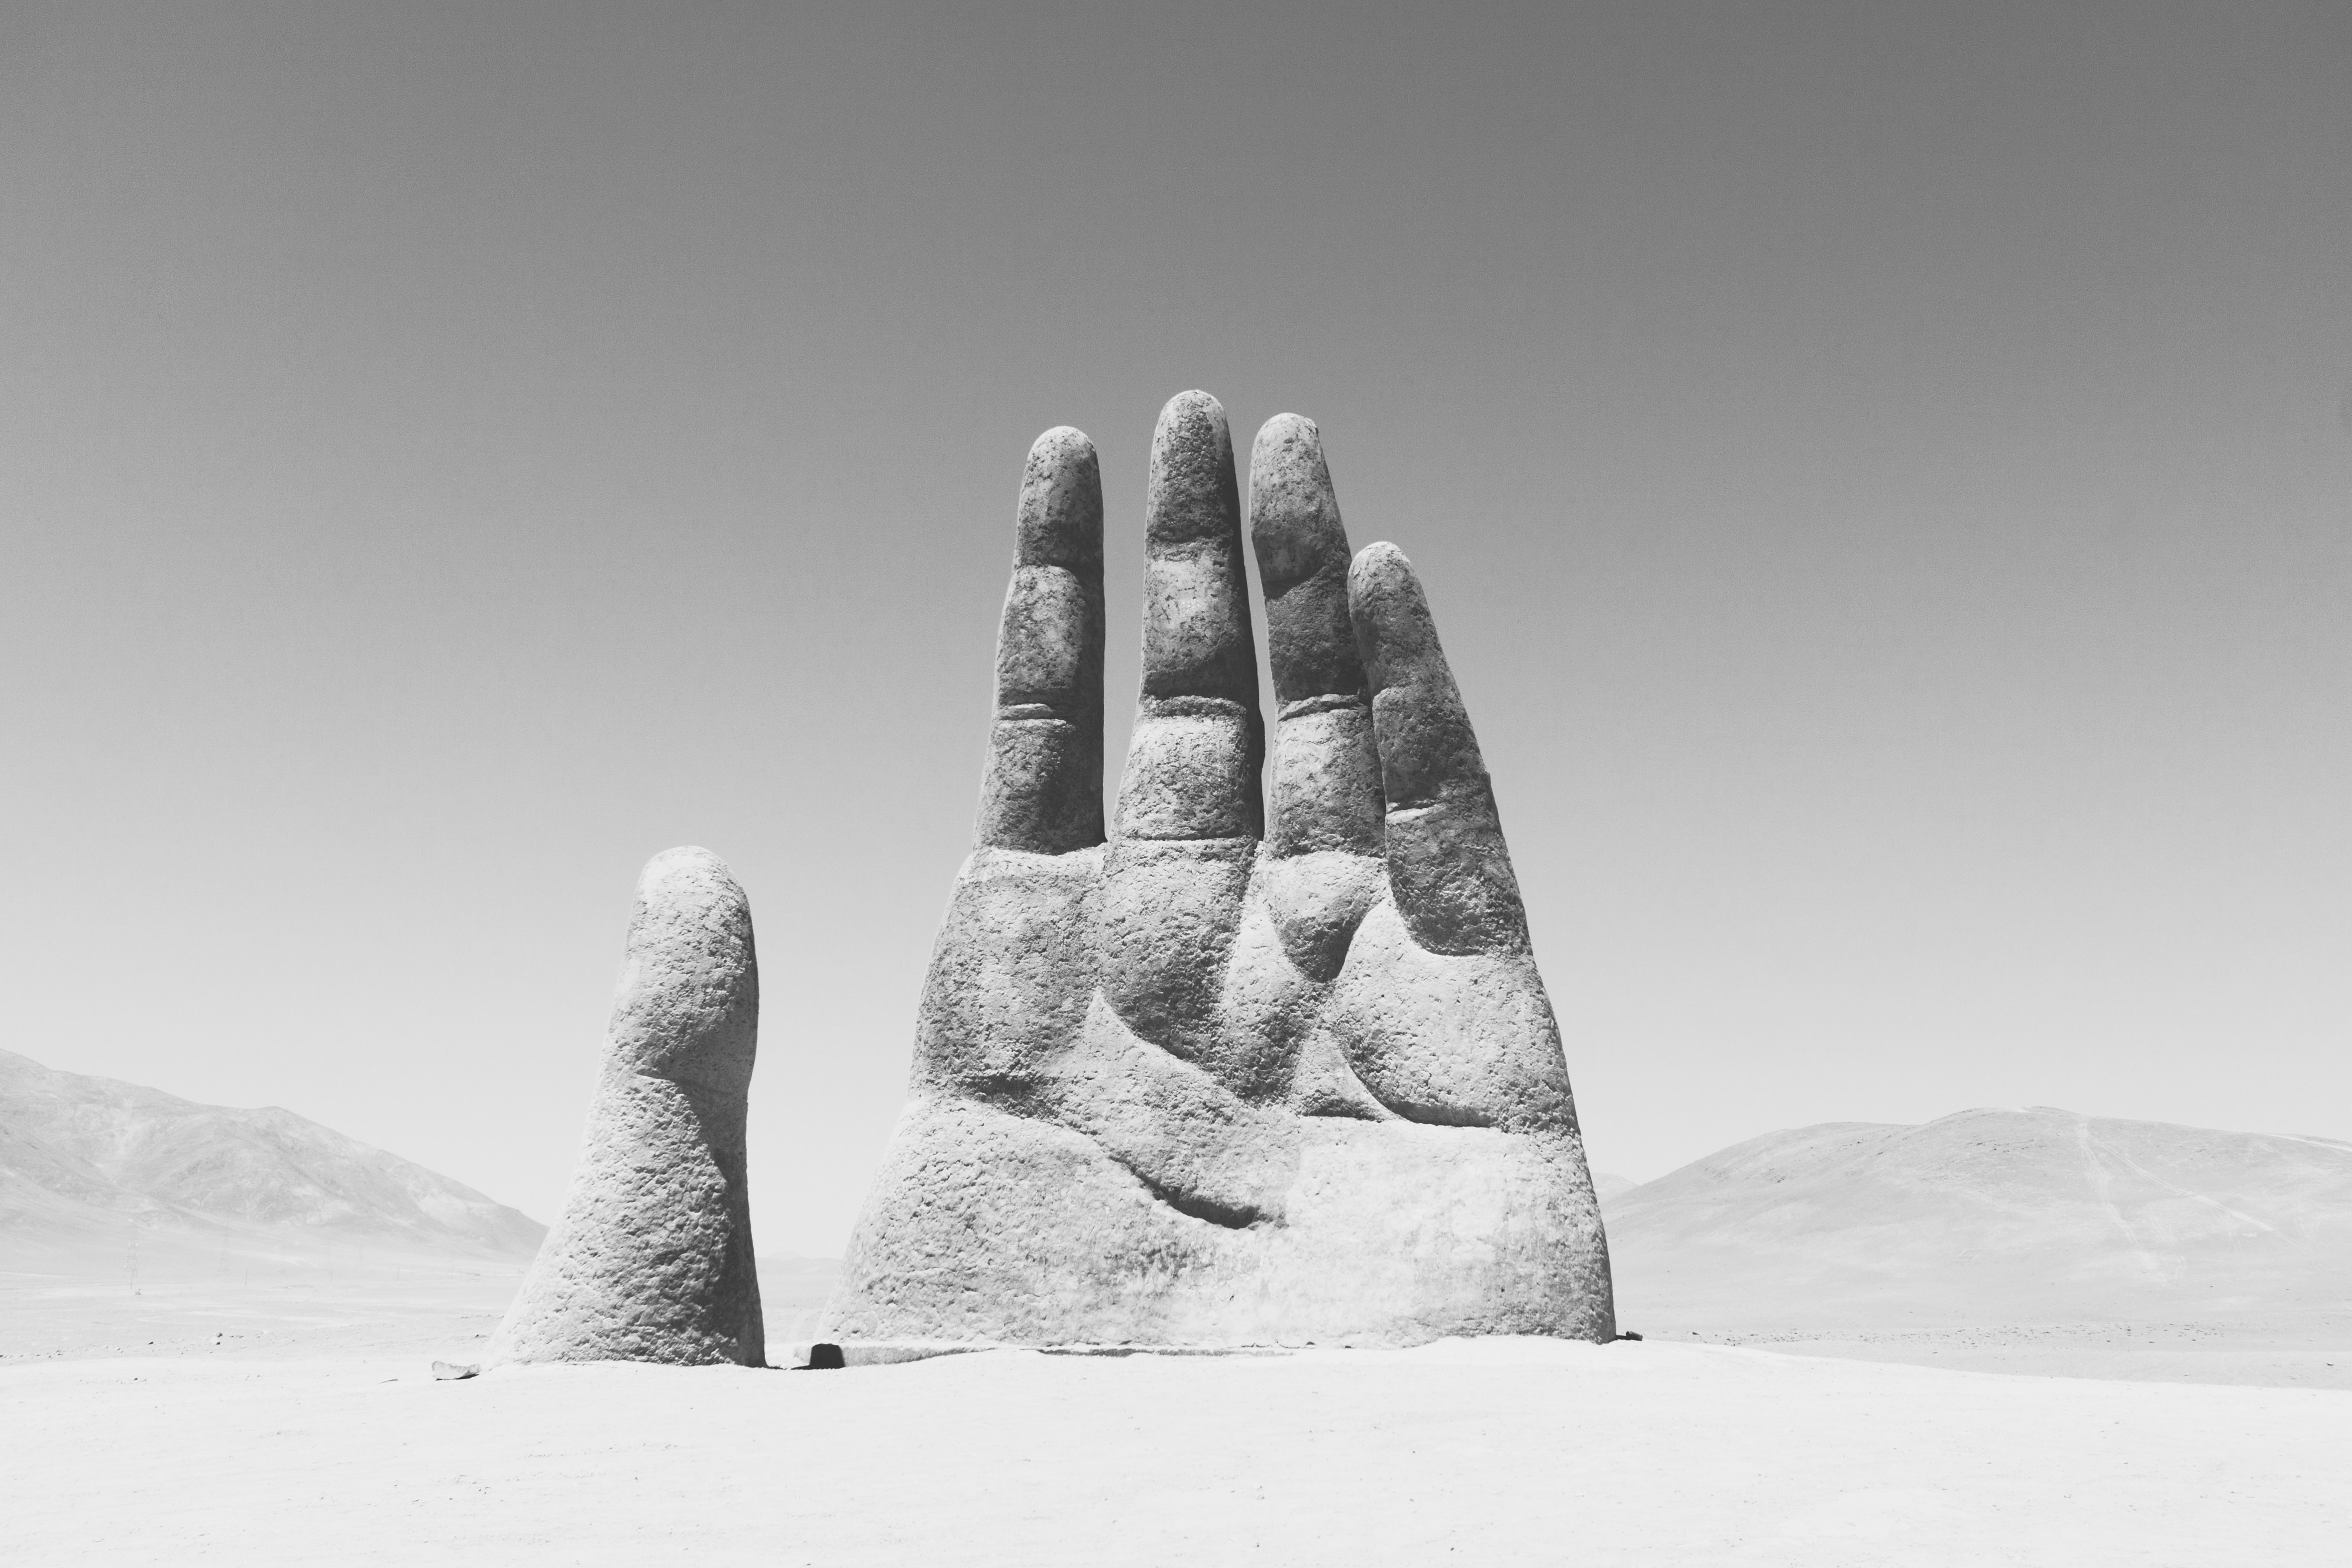 grayscale photography of hand sculpture on sad